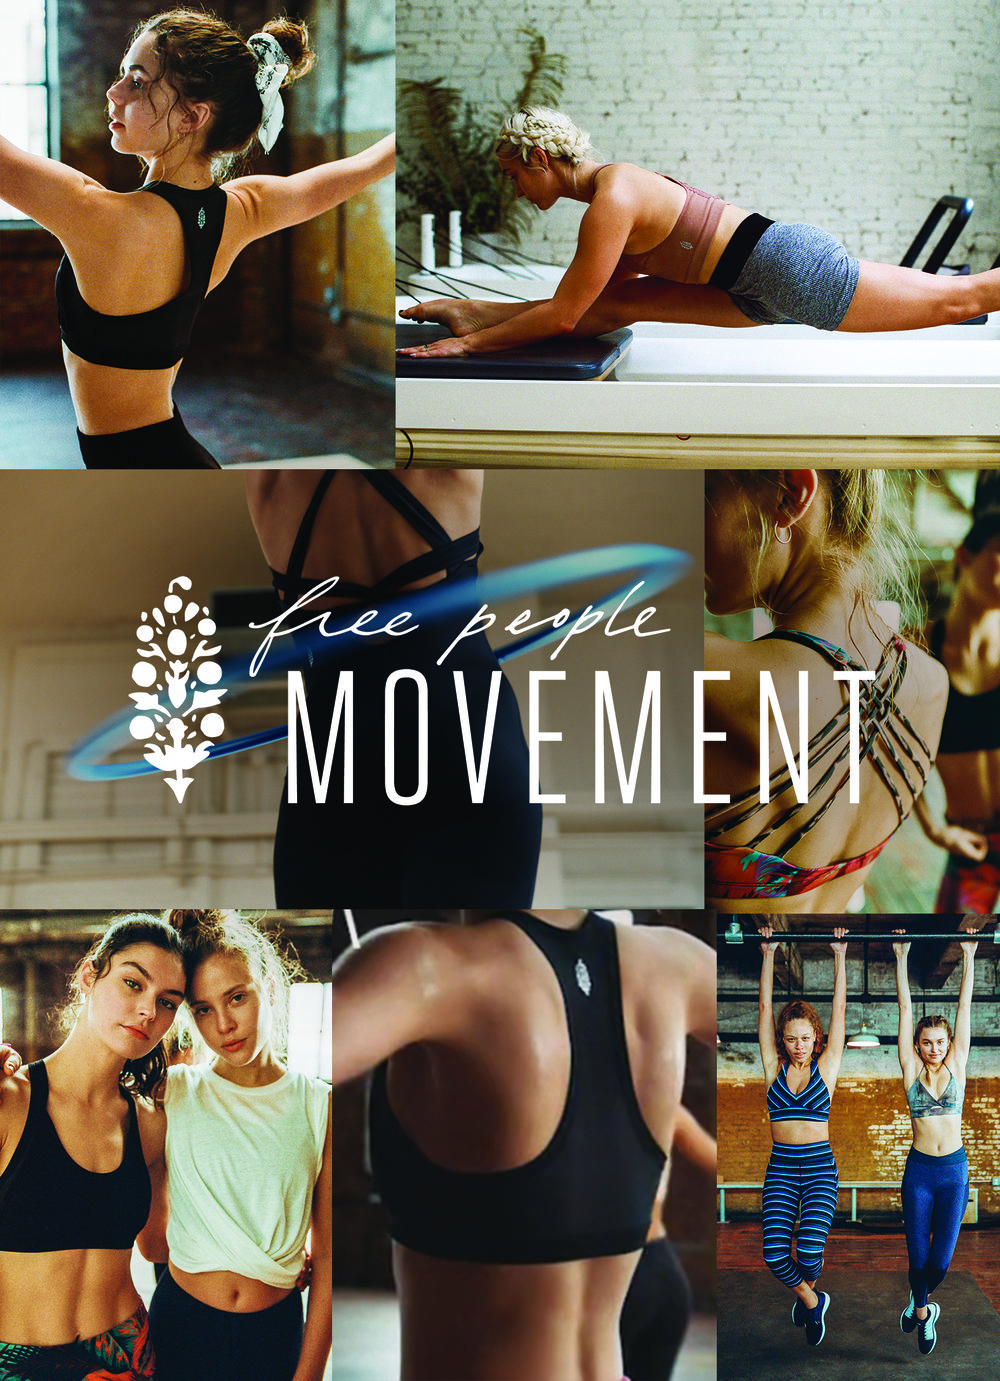 meditate and move @ FREE PEOPLE: - join us once a month at Free People Charlotte for Meditate x Move  Next Event: March 10th at 10amvendors Free People Movement, Nekter Juice Barenjoy a forty minute yoga flow followed by guided meditation and relaxation. bring your own yoga mat.